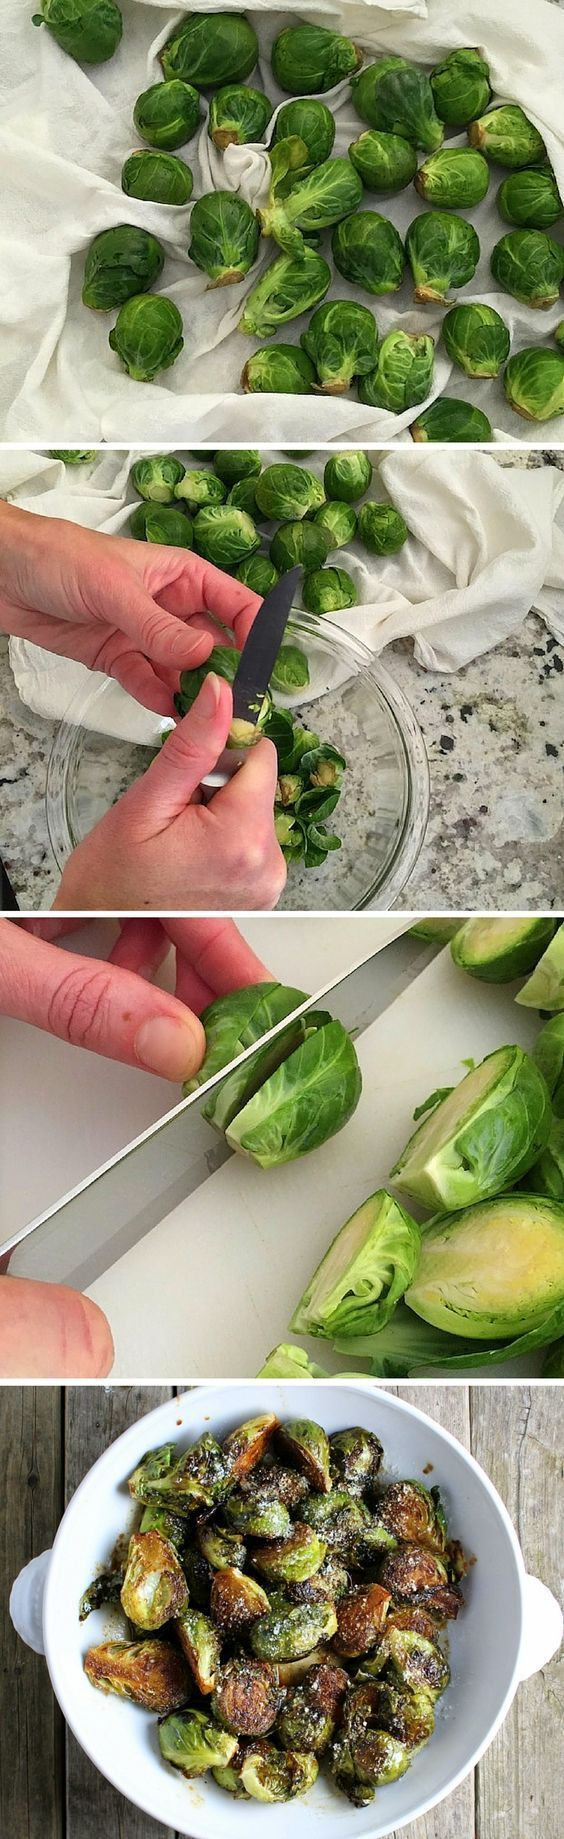 Super-easy recipe for balsamic glazed #Brussels sprouts.  Fast, delicious, & healthy!  http://tasteandsee.com